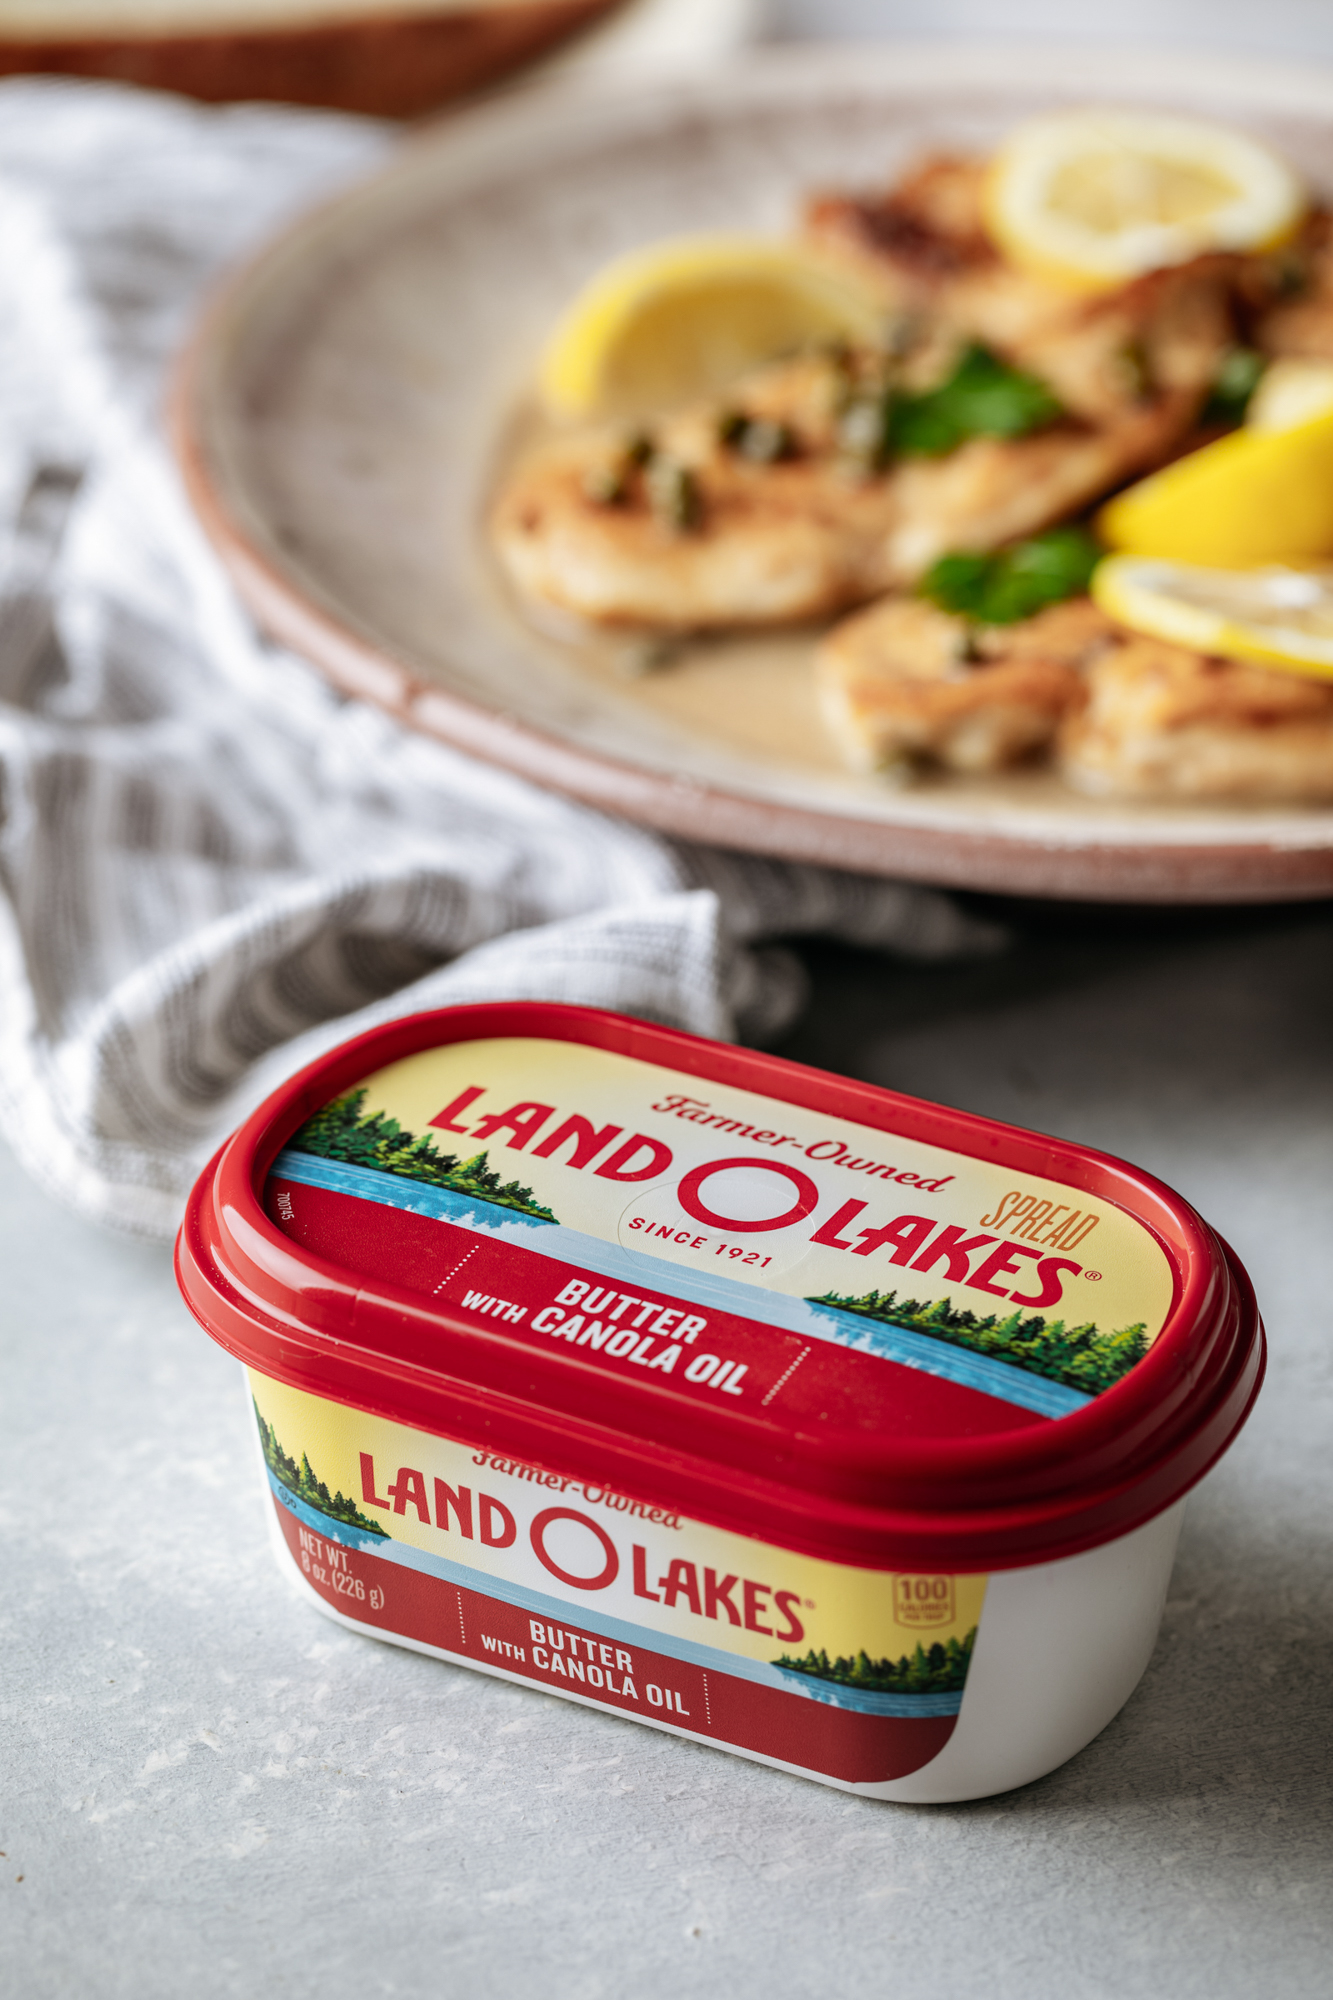 Chicken Piccata made with Land O Lakes® Butter with Canola Oil! The perfect recipe for a weeknight dinner, or for Mother's Day. Your family will love this!